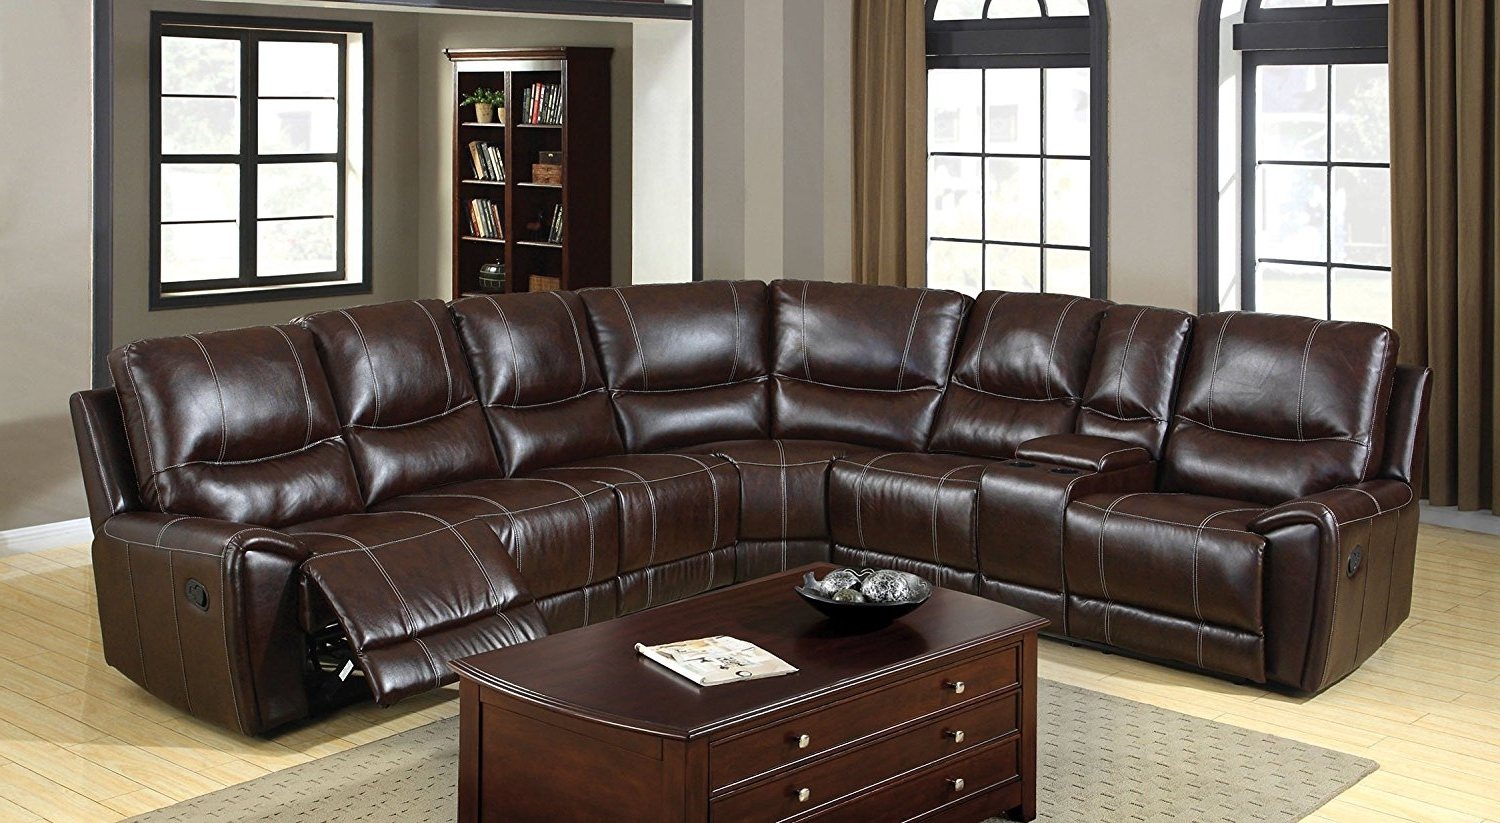 Leather Recliner Sectional Sofas Intended For Well Known Amazon: Furniture Of America Reeden Bonded Leather Match (View 13 of 15)